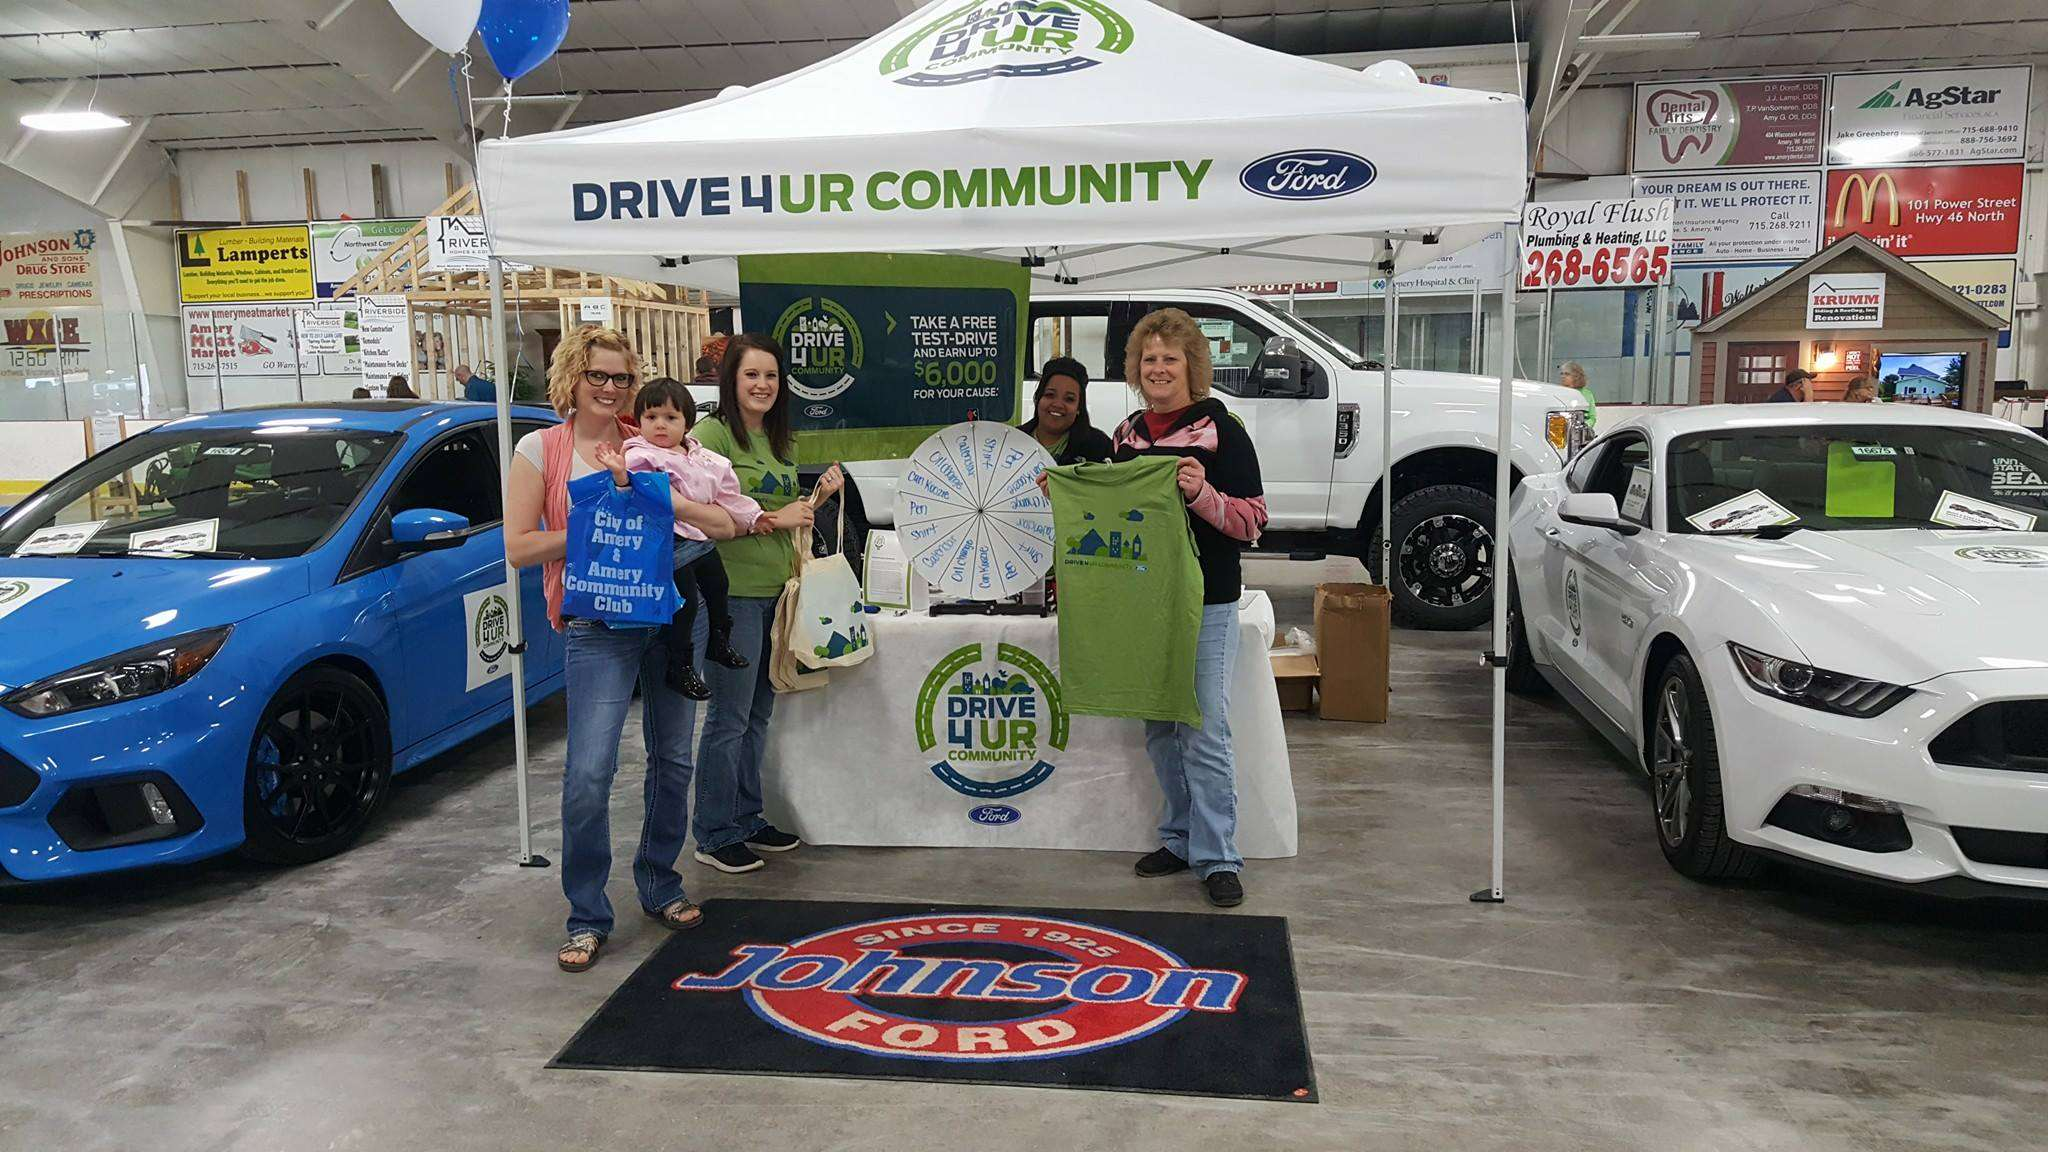 Drive for the Community